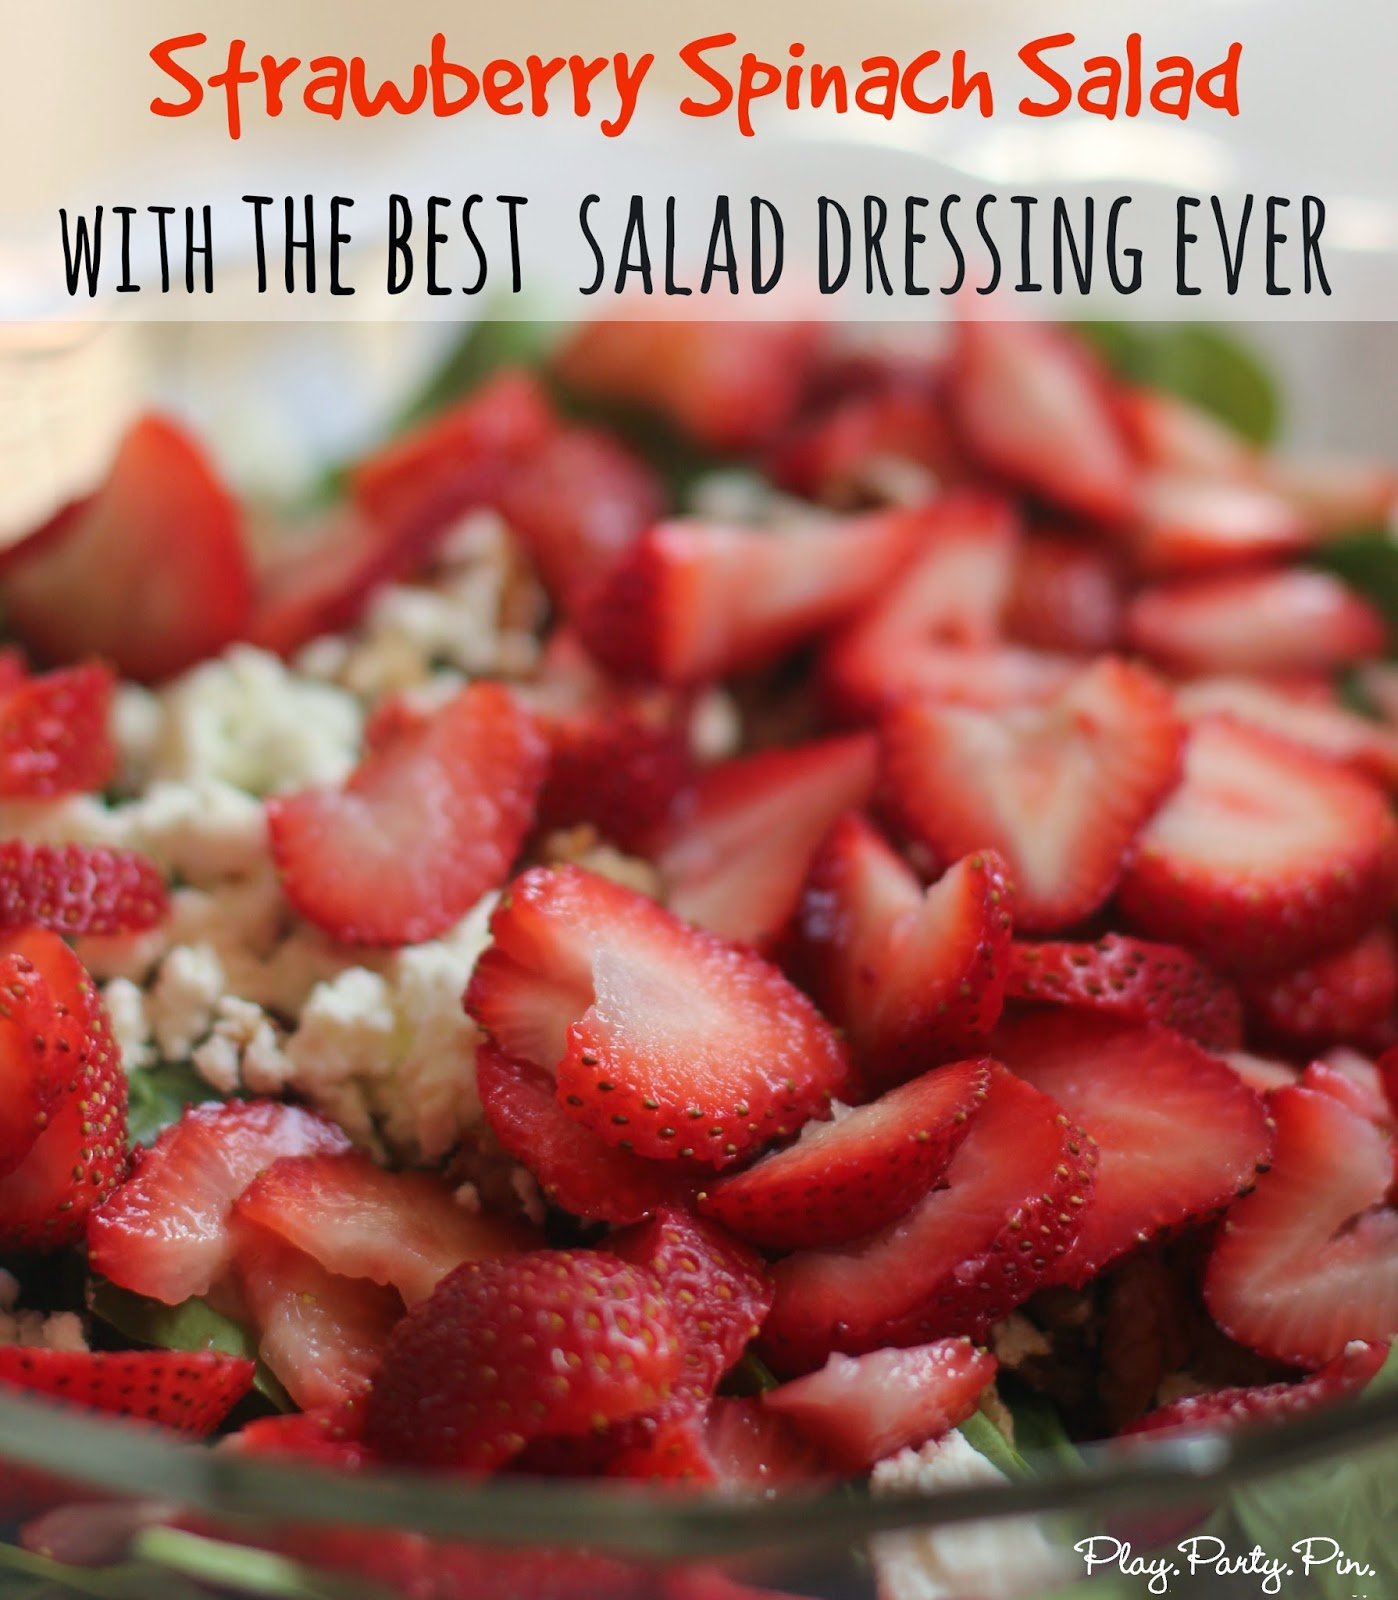 Strawberry Spinach Salad with The Best Salad Dressing - Play.Party.Pin